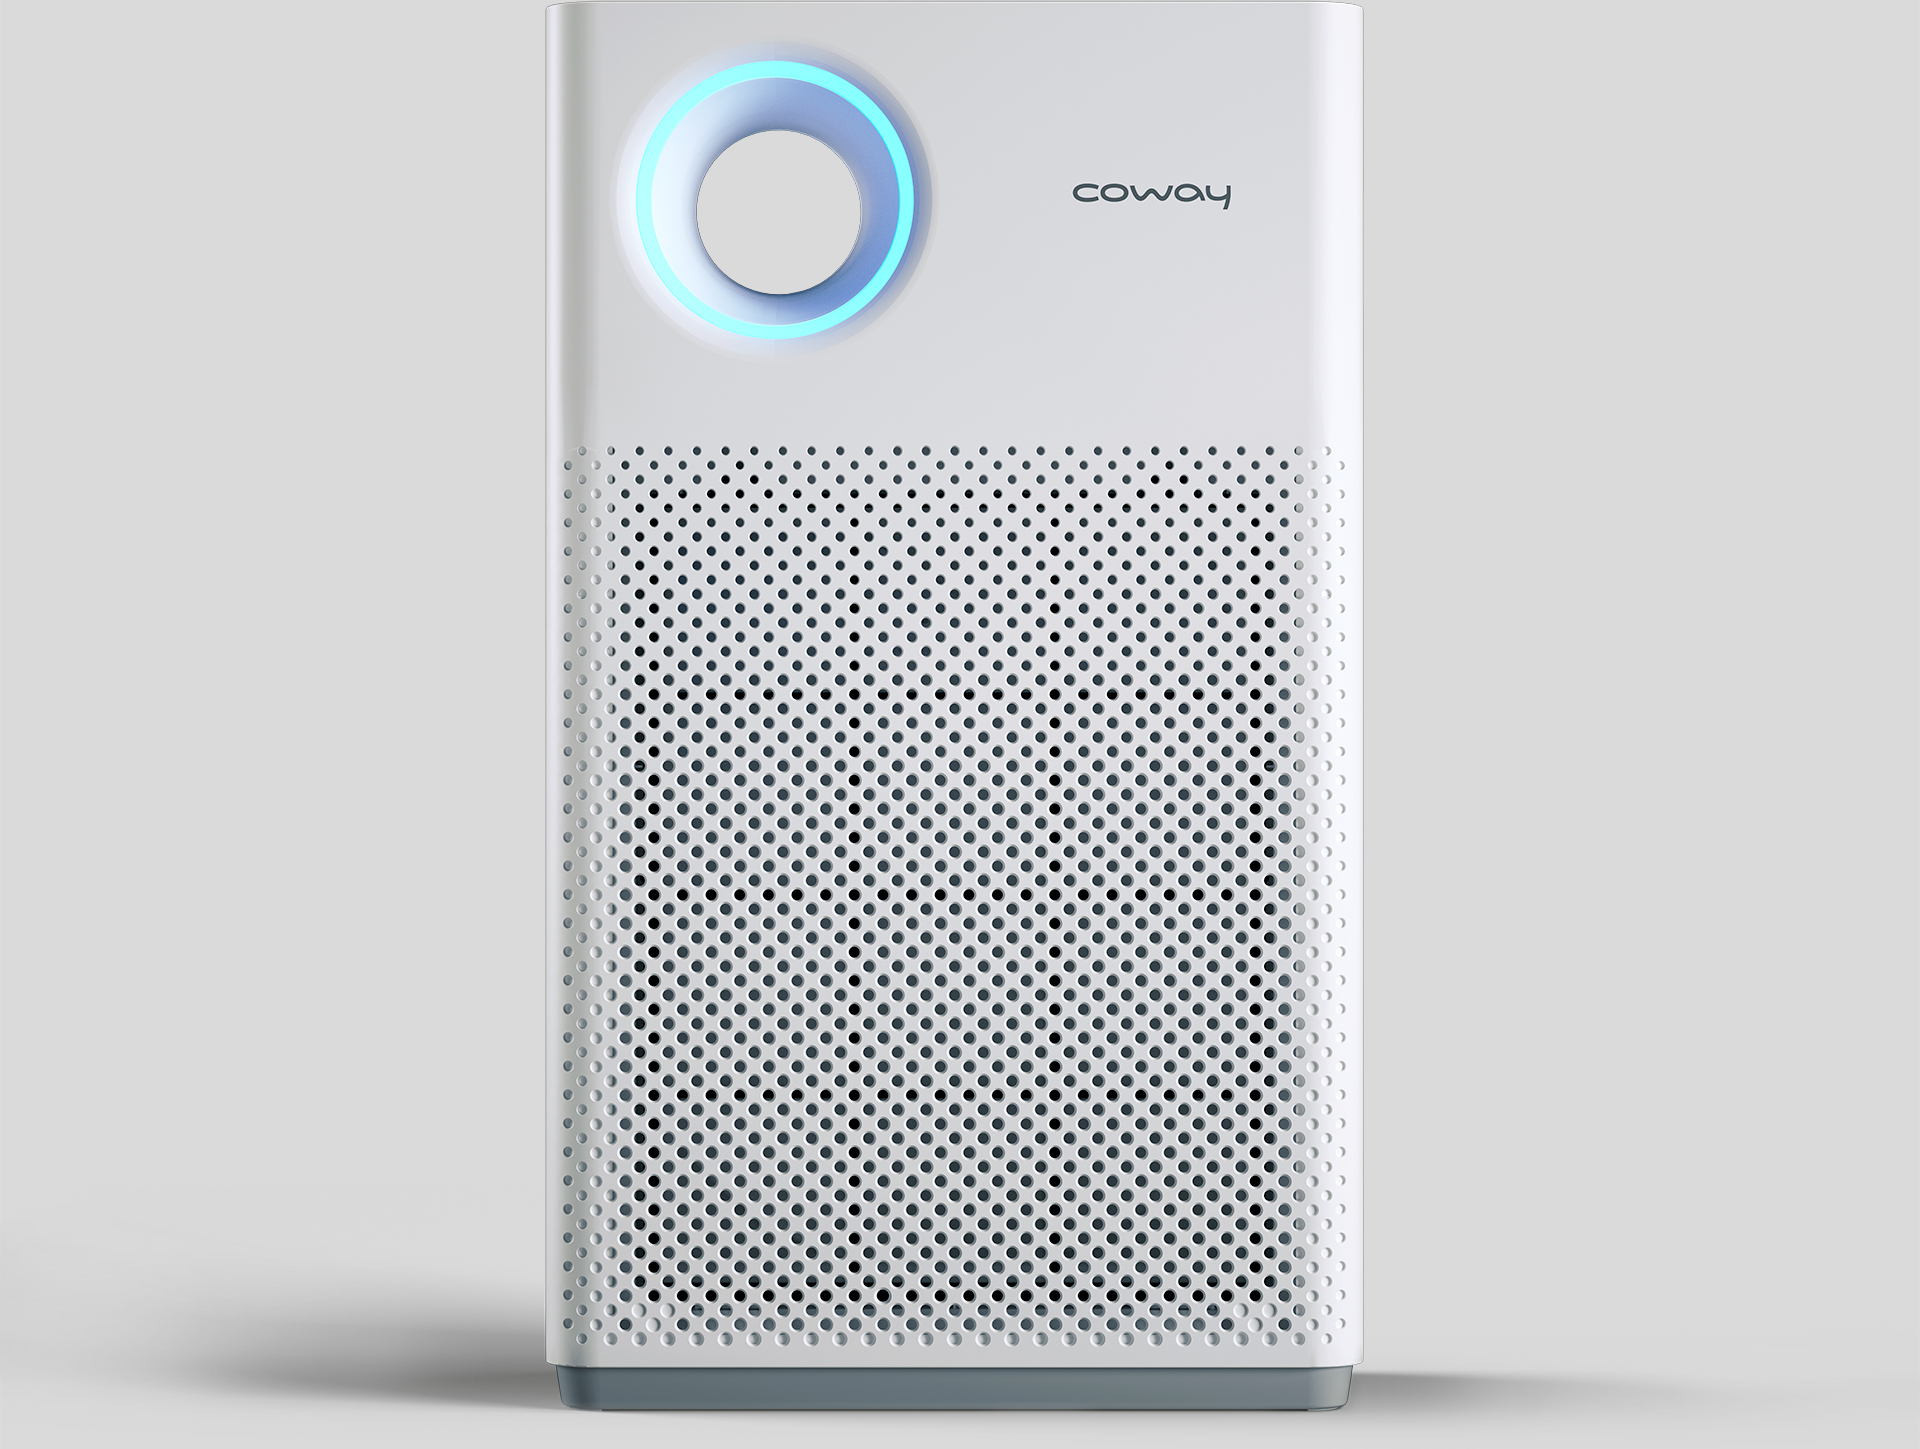 Coway Breeze Air Purifier - Front View